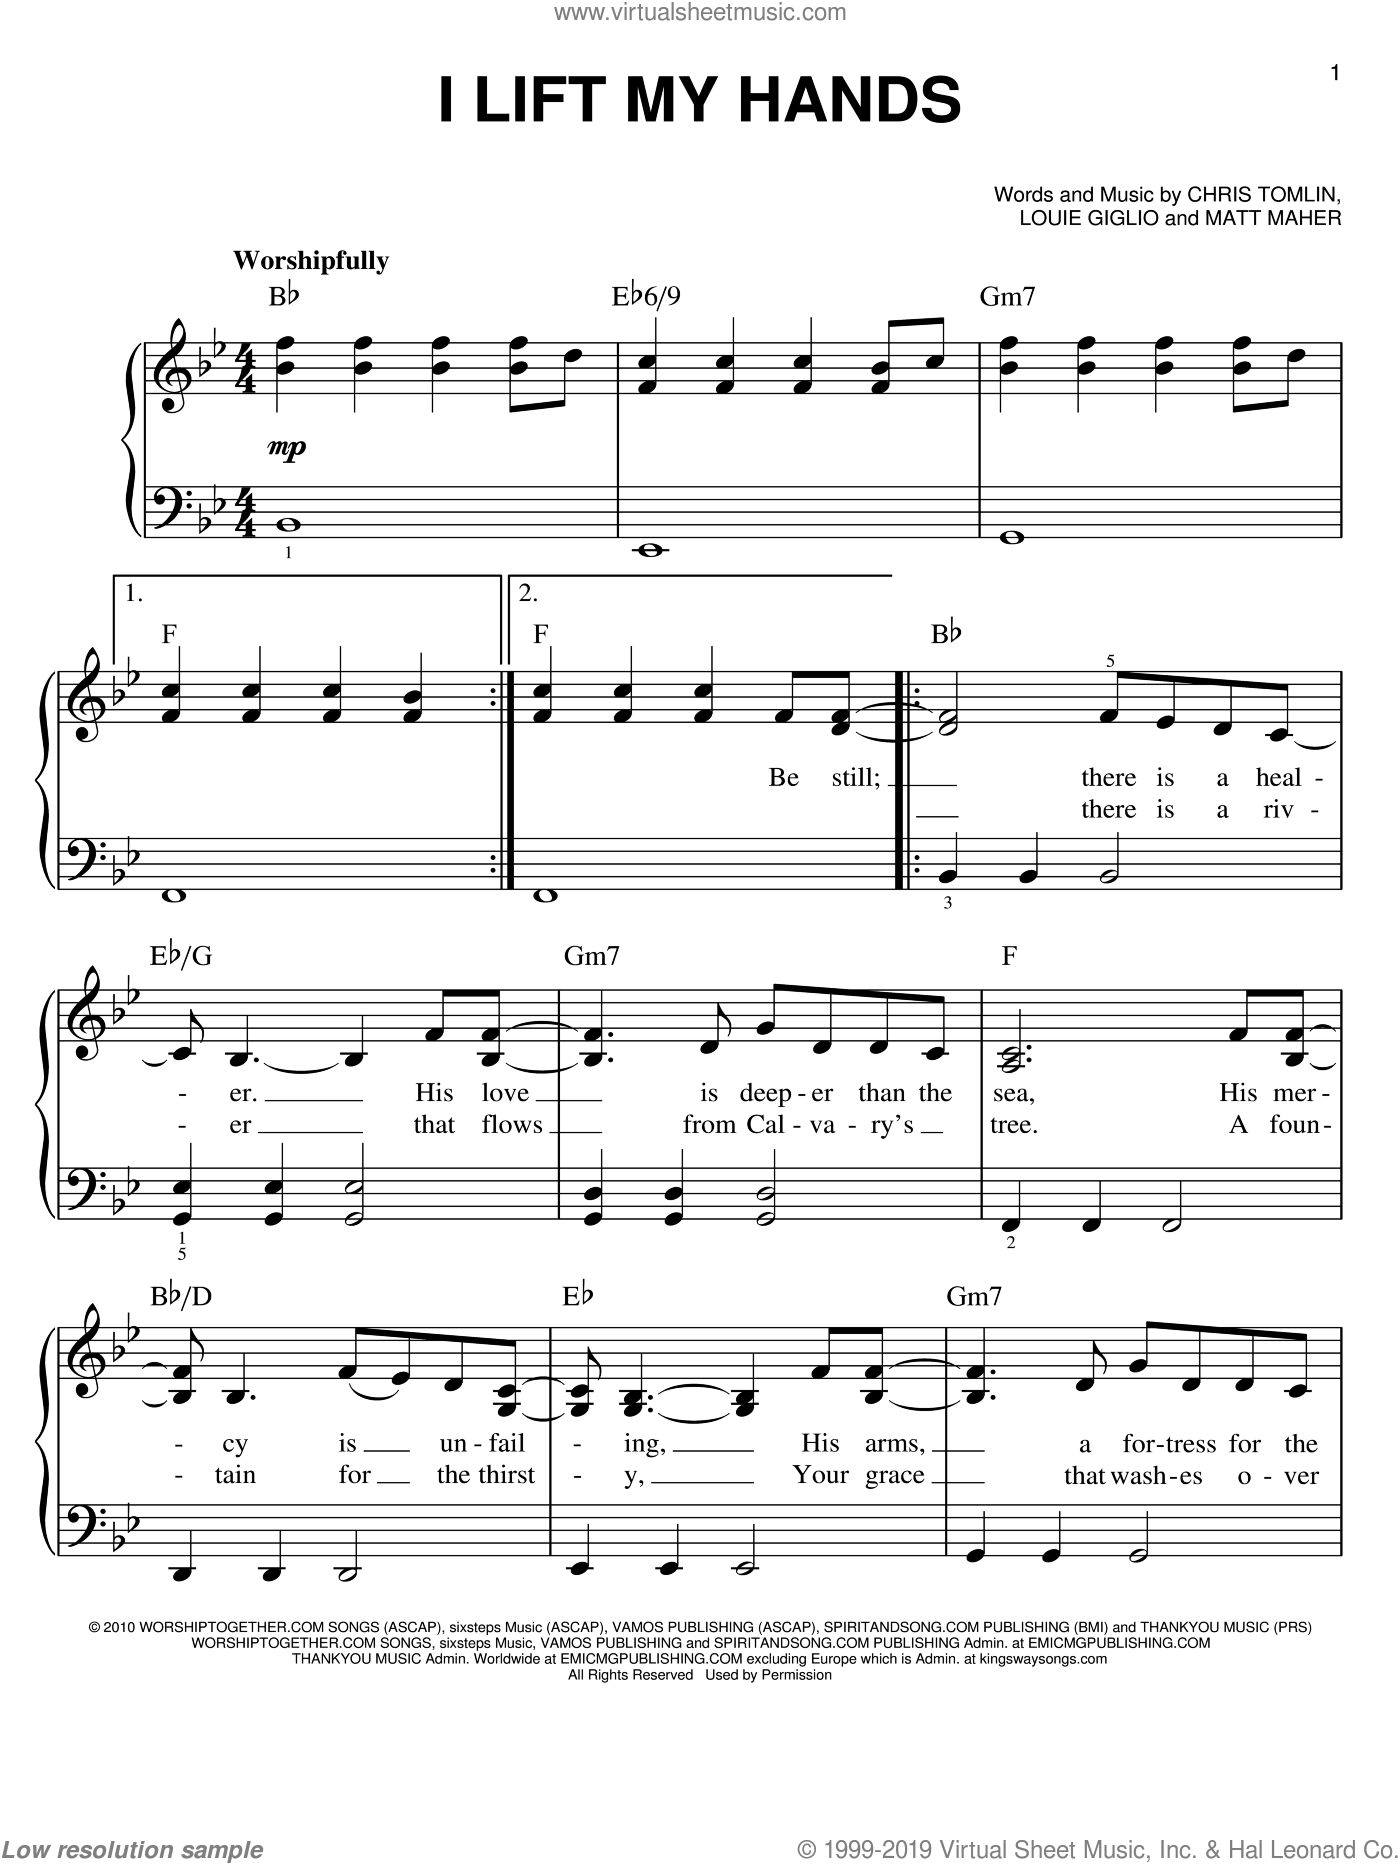 I Lift My Hands sheet music for piano solo by Chris Tomlin and Matt Maher. Score Image Preview.